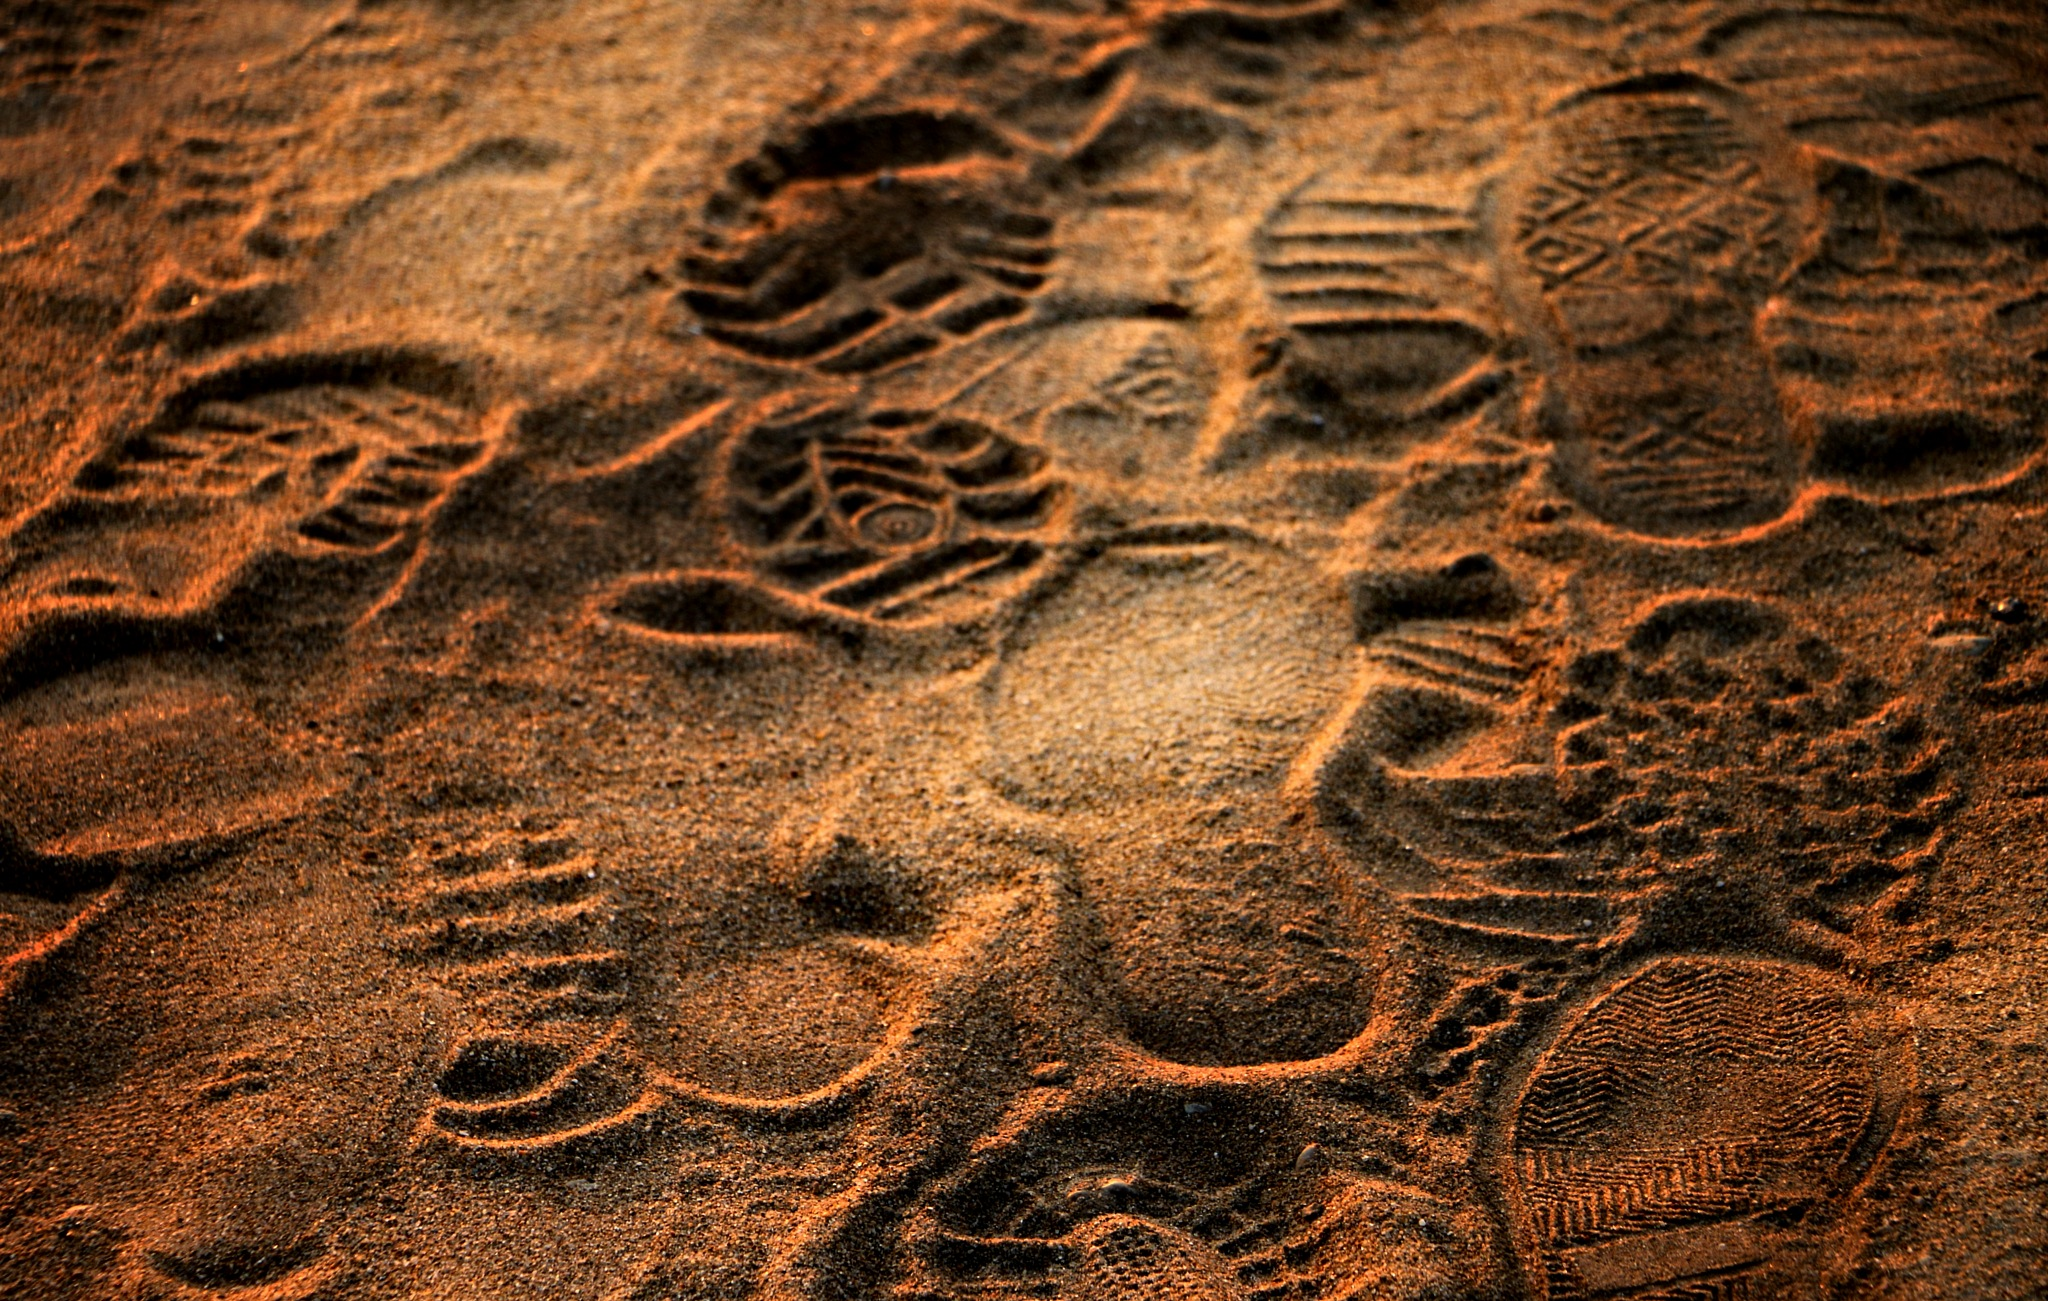 TRACES IN THE SAND by LUNA